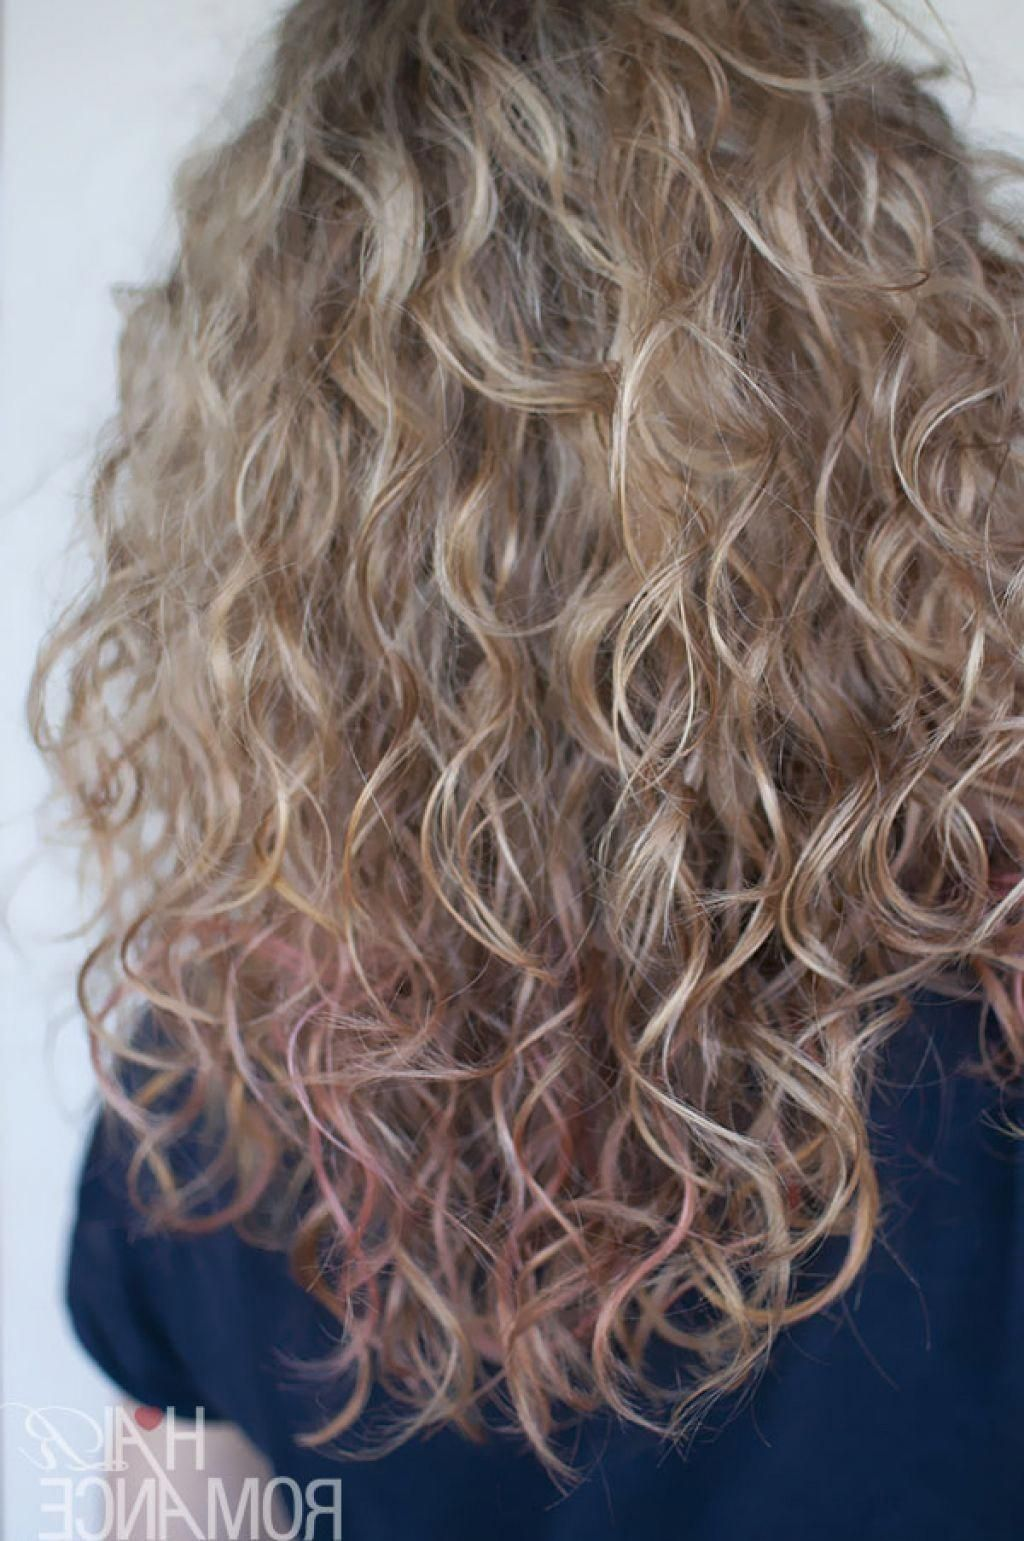 Long Layered Wavy Hair Back View Hairstyles And Haircuts With Greasy Hair Concept Curlyhairwit Permed Hairstyles Curly Hair Styles Naturally Curly Hair Styles